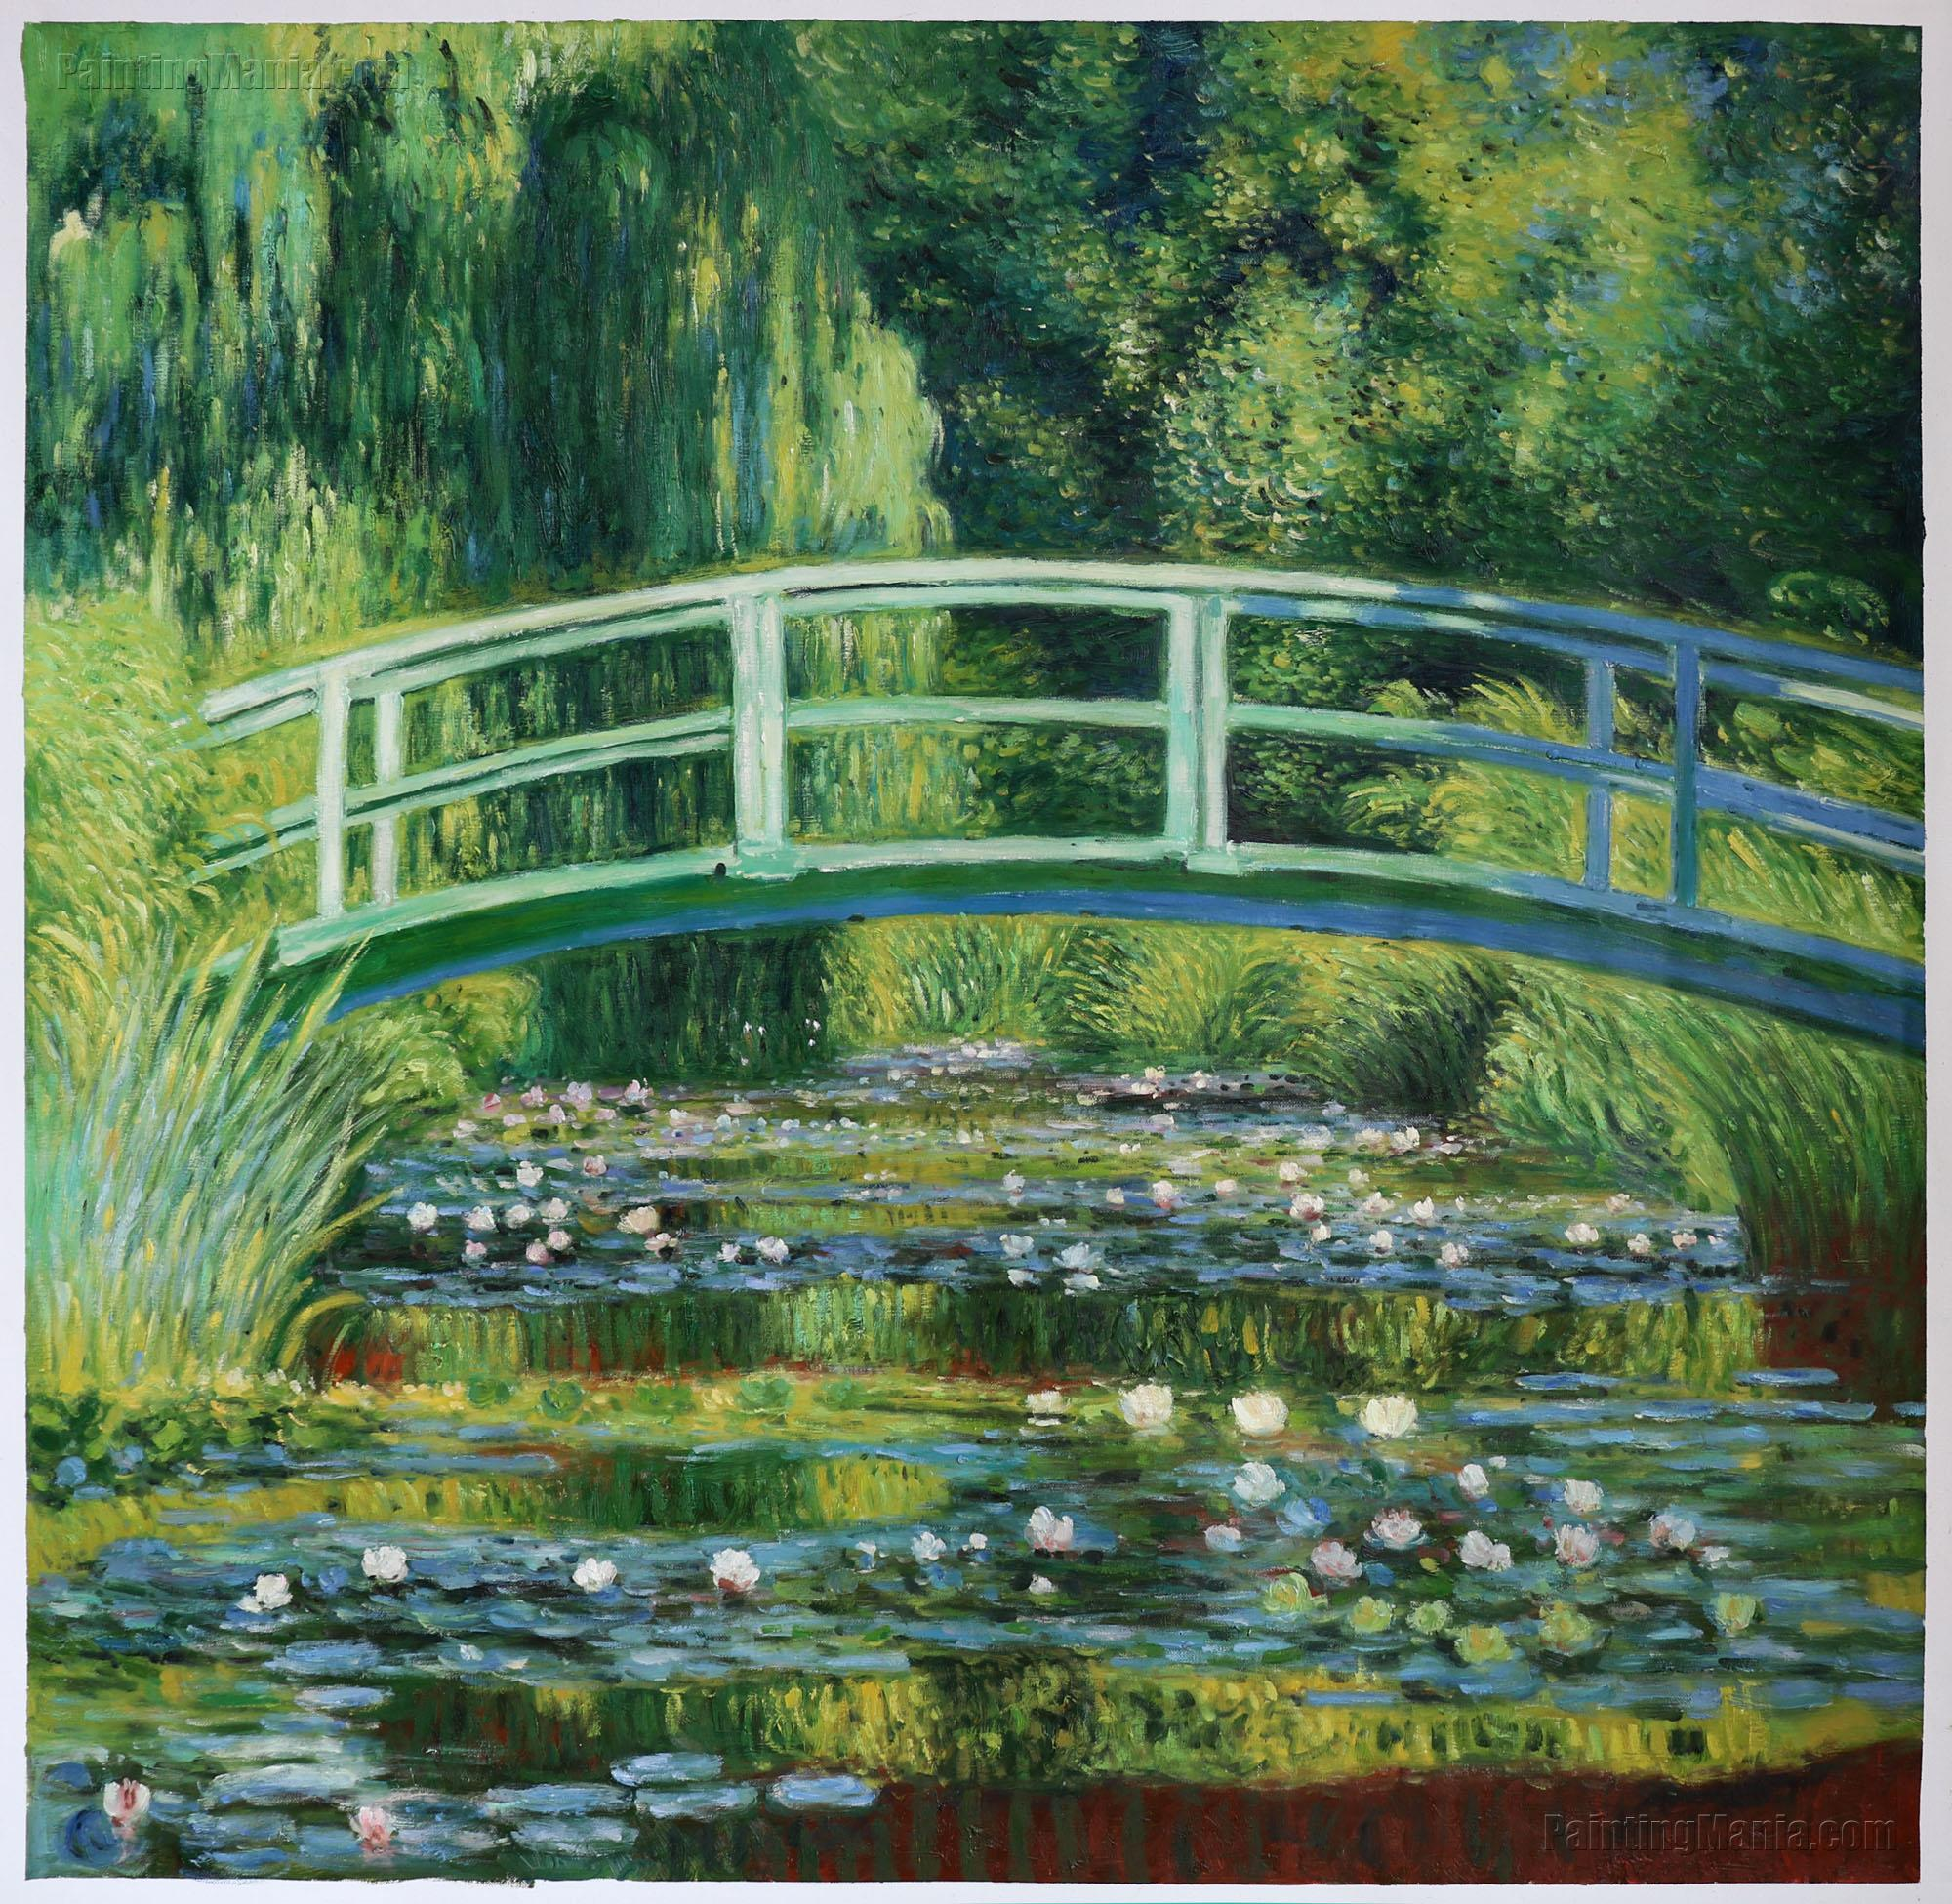 Claude Monet Cuadros The Water Lily Pond 18 Claude Monet Paintings